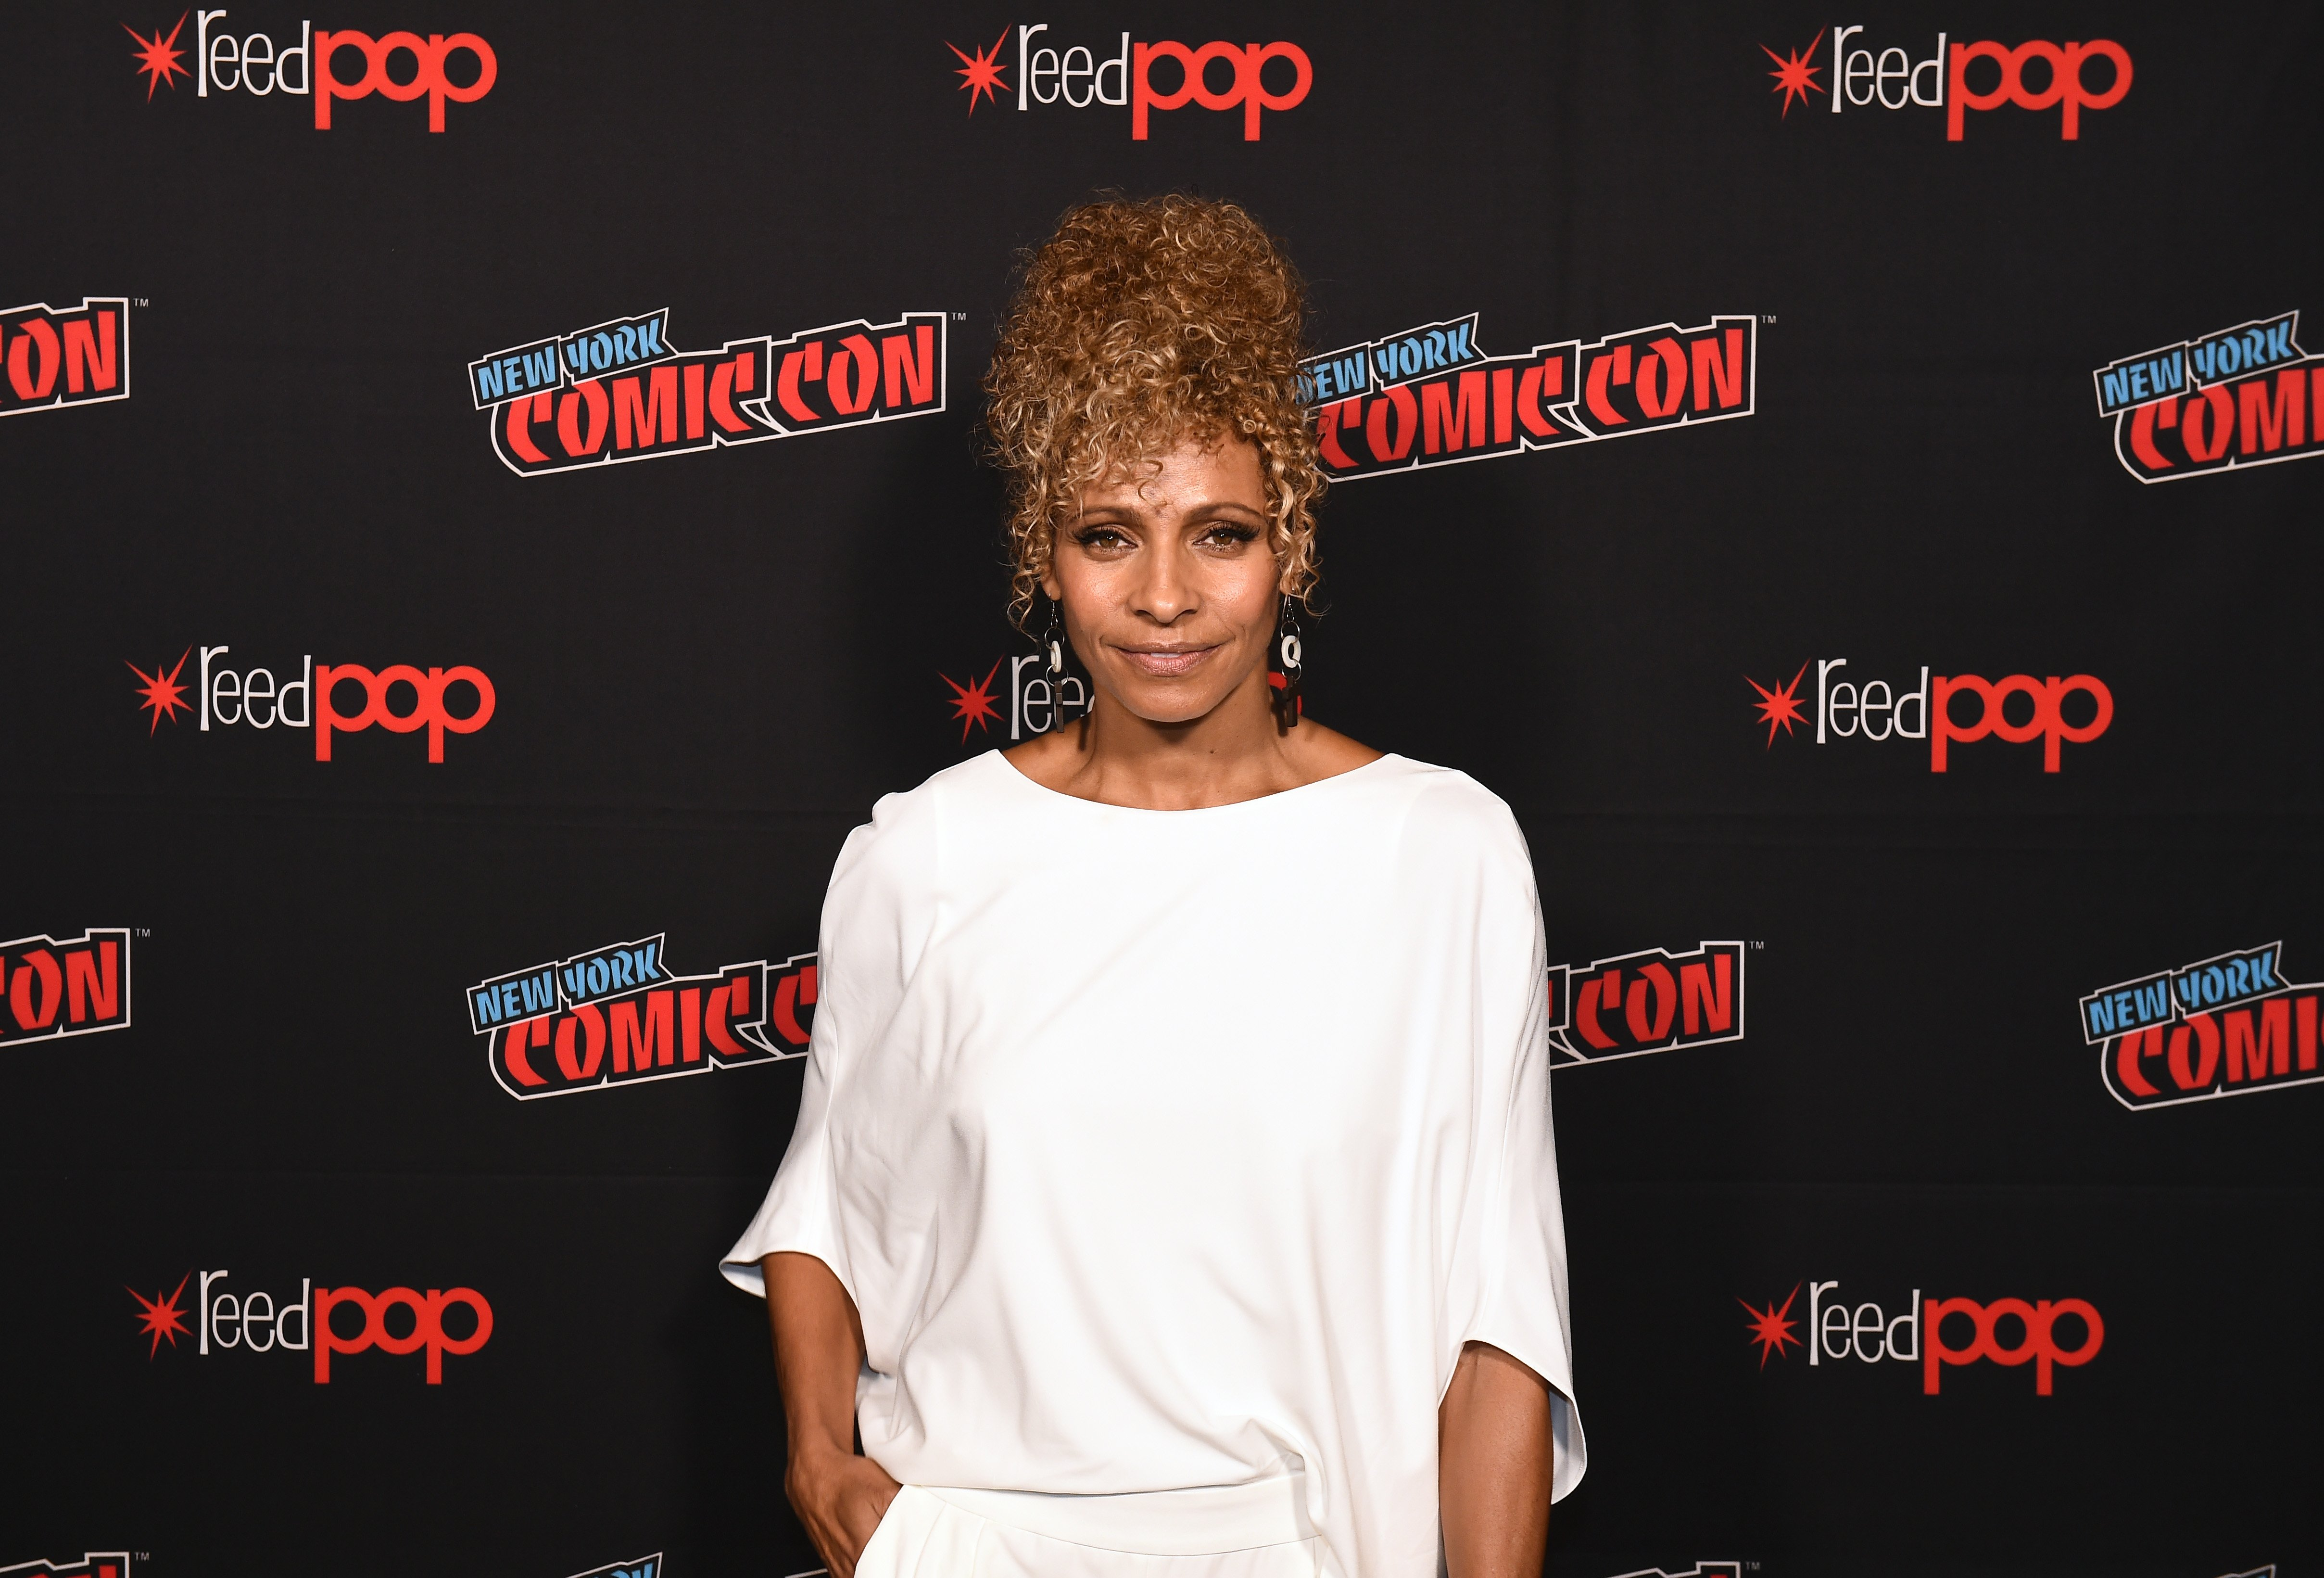 Michelle Hurd poses for a photo during New York Comic Con 2019 Day 3 at the Hulu Theater at Madison Square Garden on October 05, 2019, in New York City. | Source: Getty Images.